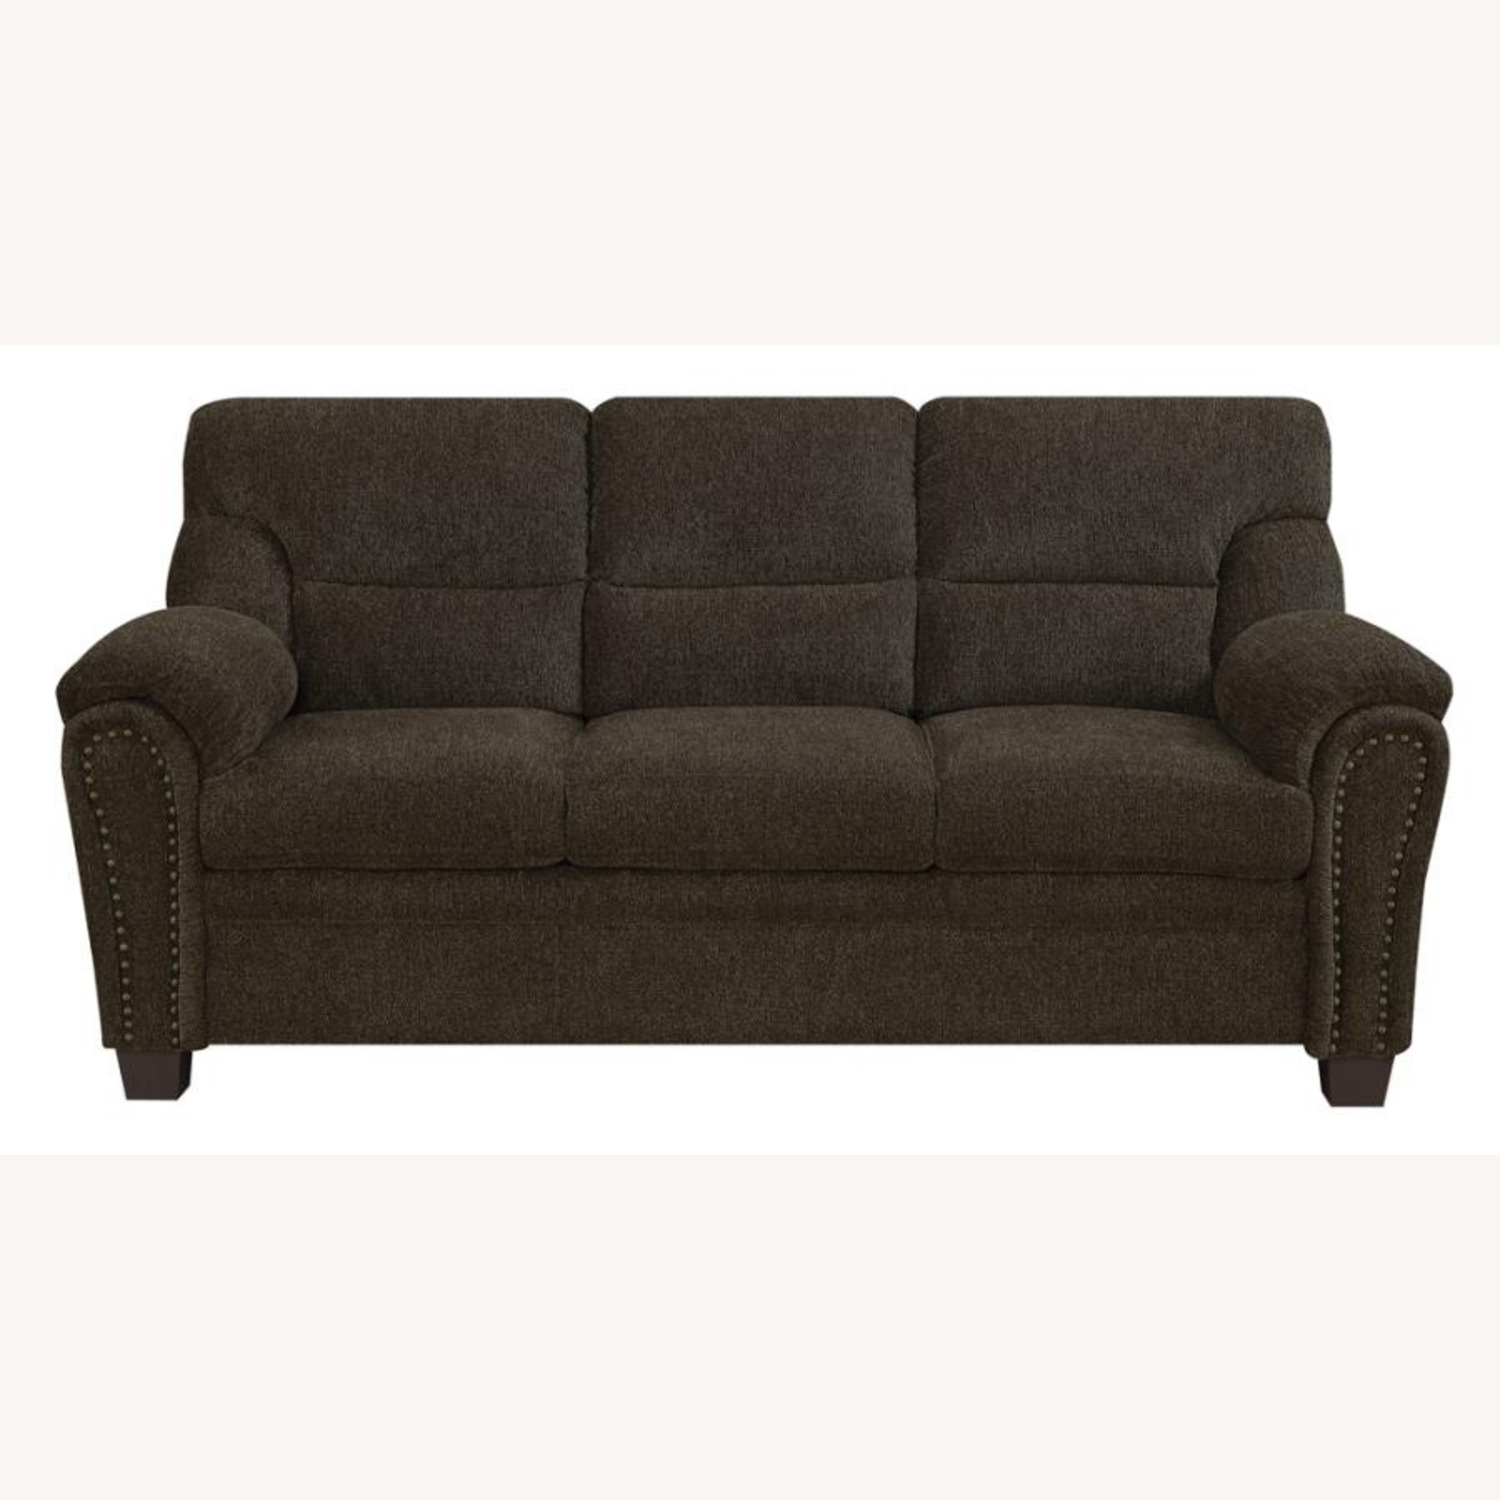 Sofa In Brown Chenille Upholstery Finish - image-0